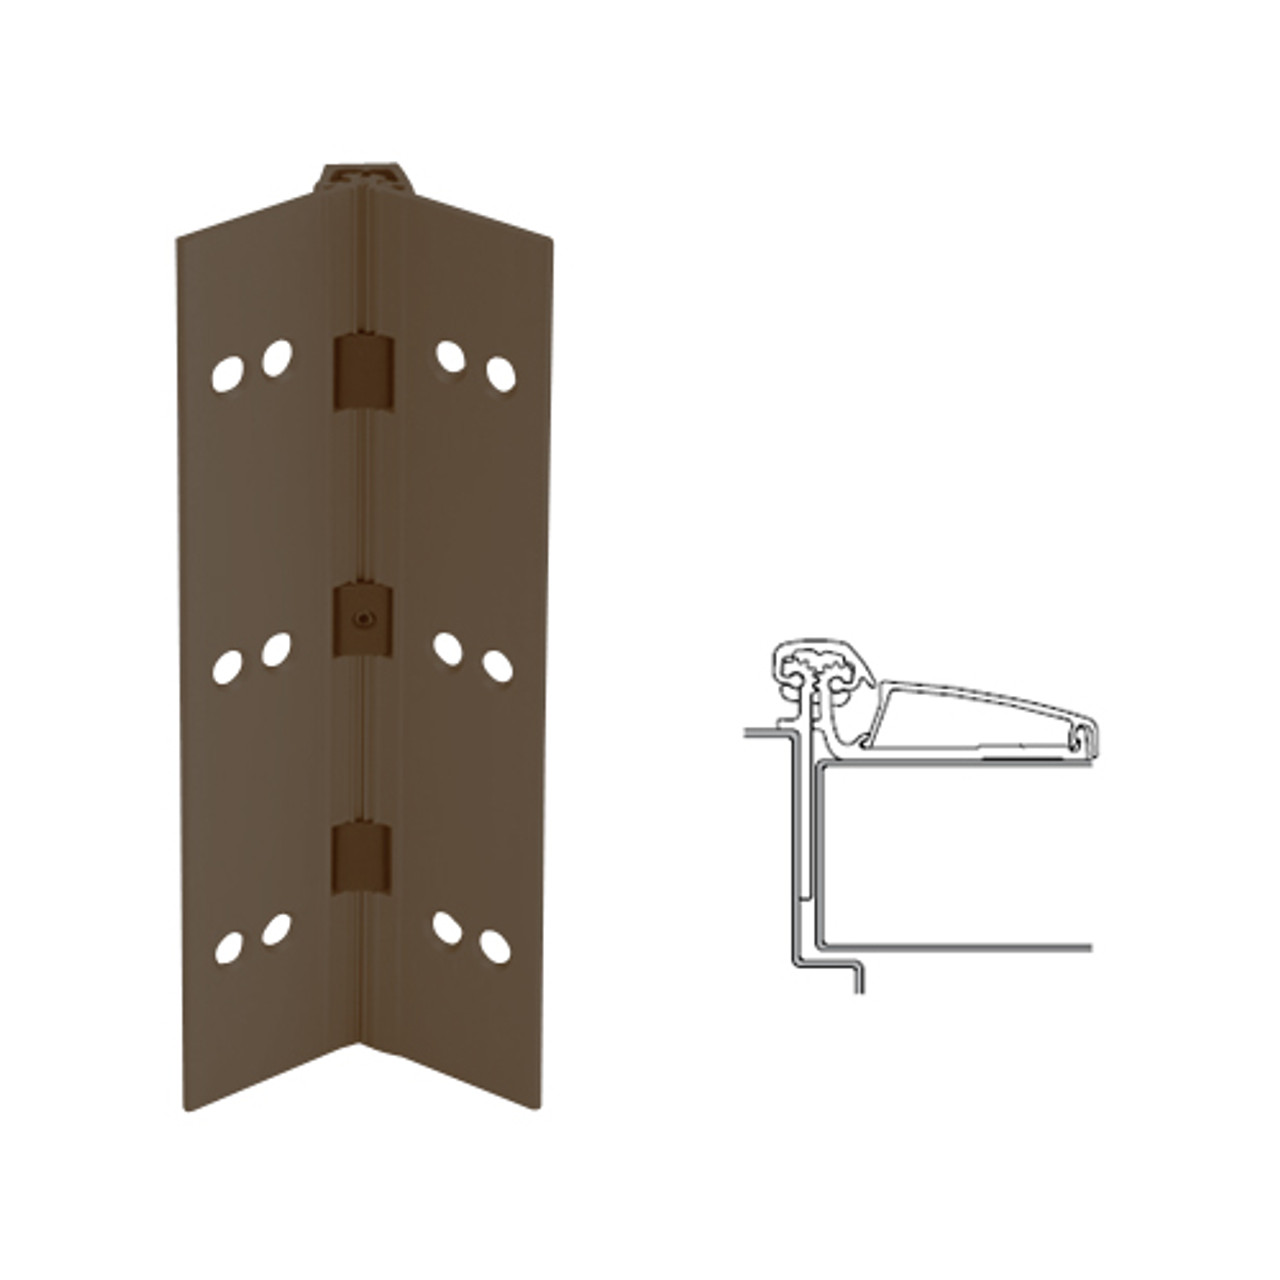 045XY-313AN-85-WD IVES Adjustable Half Surface Continuous Geared Hinges with Wood Screws in Dark Bronze Anodized